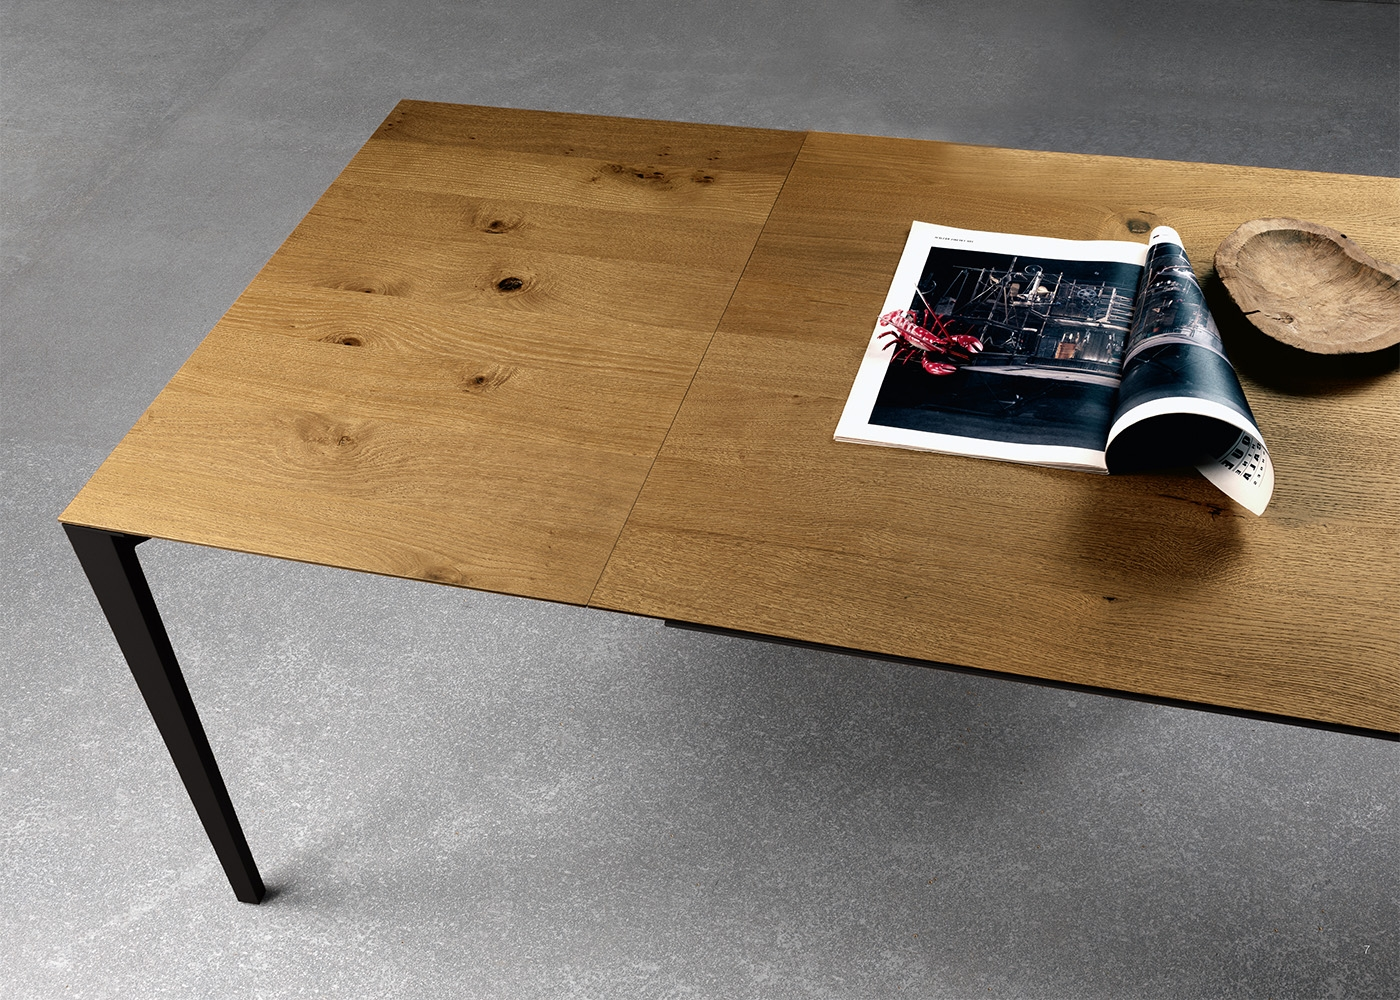 Table de repas en ch ne ou noyer au design sobre et for Table salle a manger 240 cm